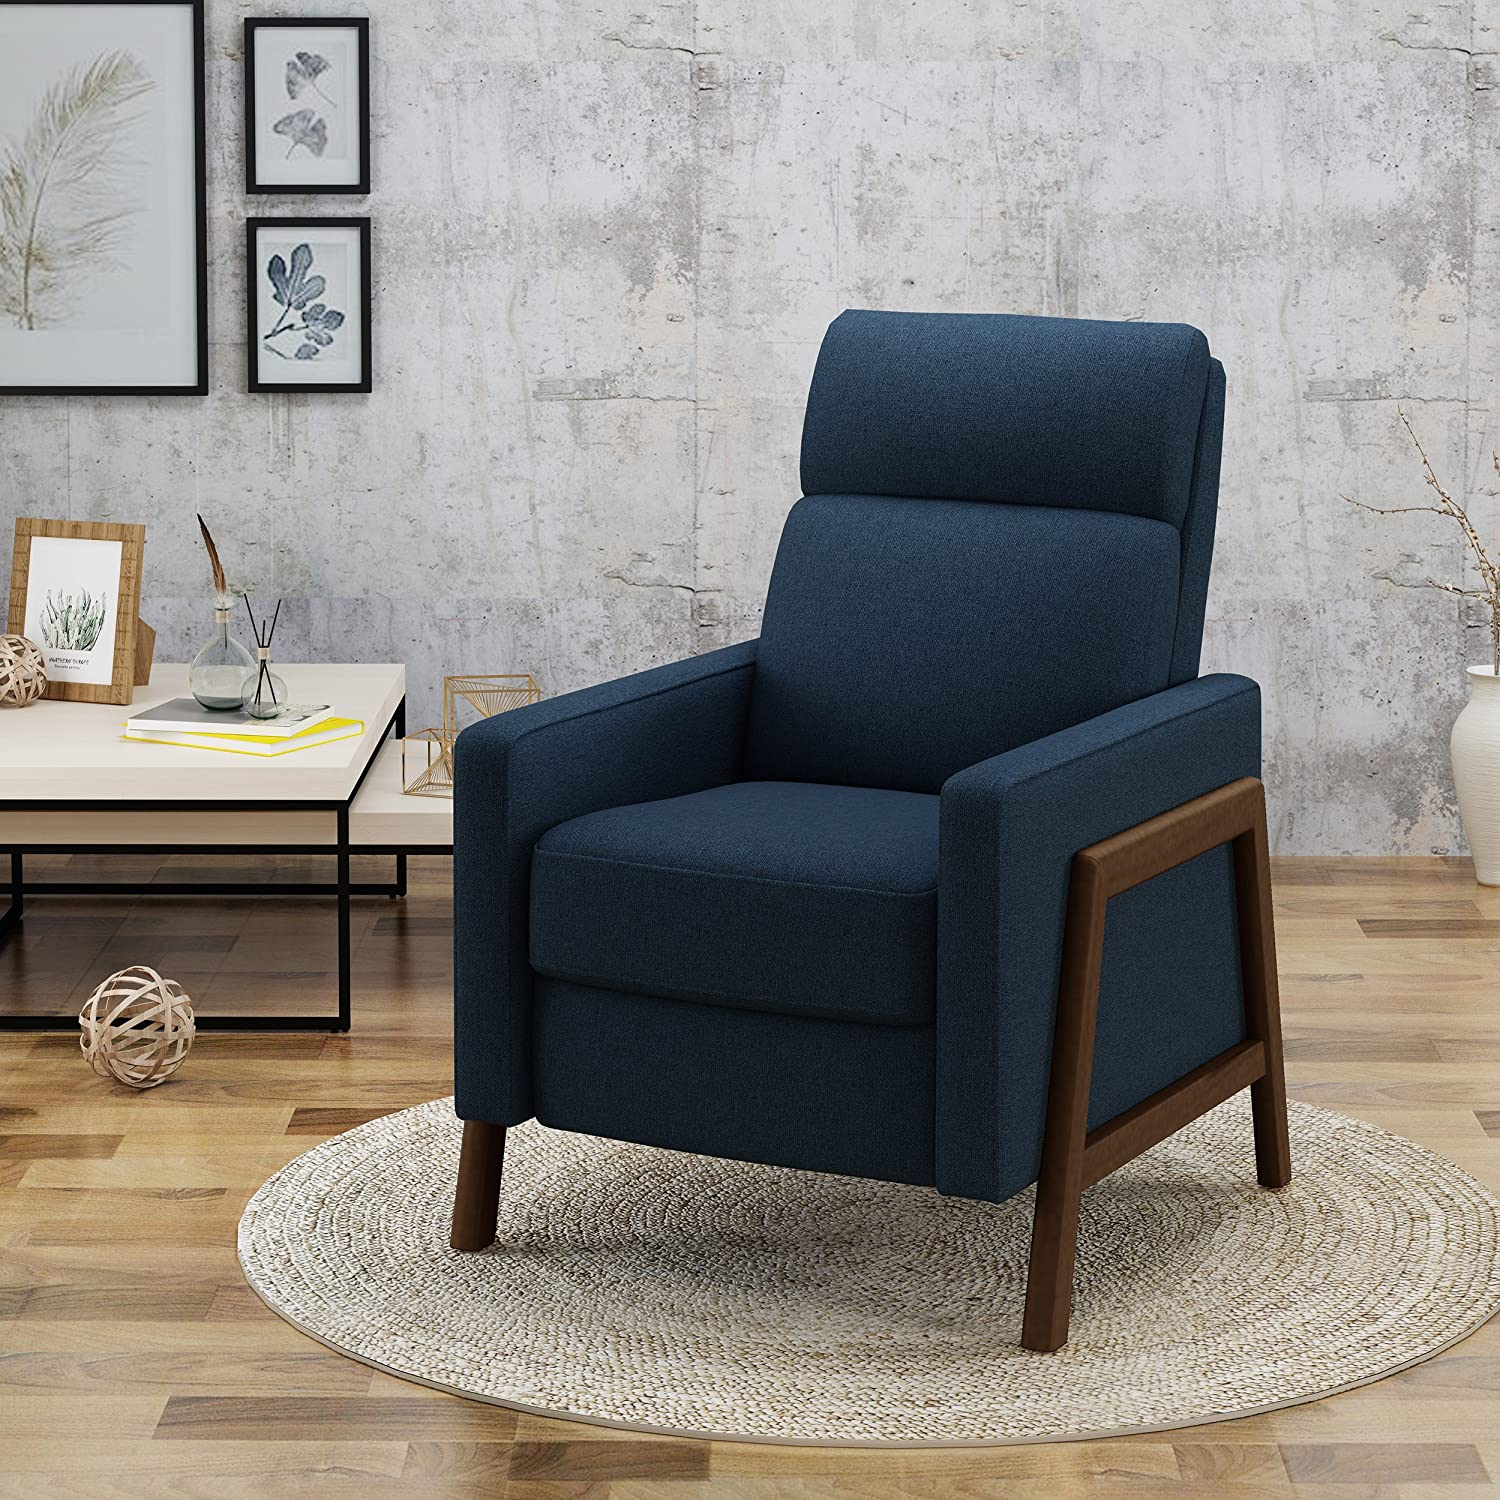 Amazon com great deal furniture chris mid century modern fabric recliner in navy blue kitchen dining